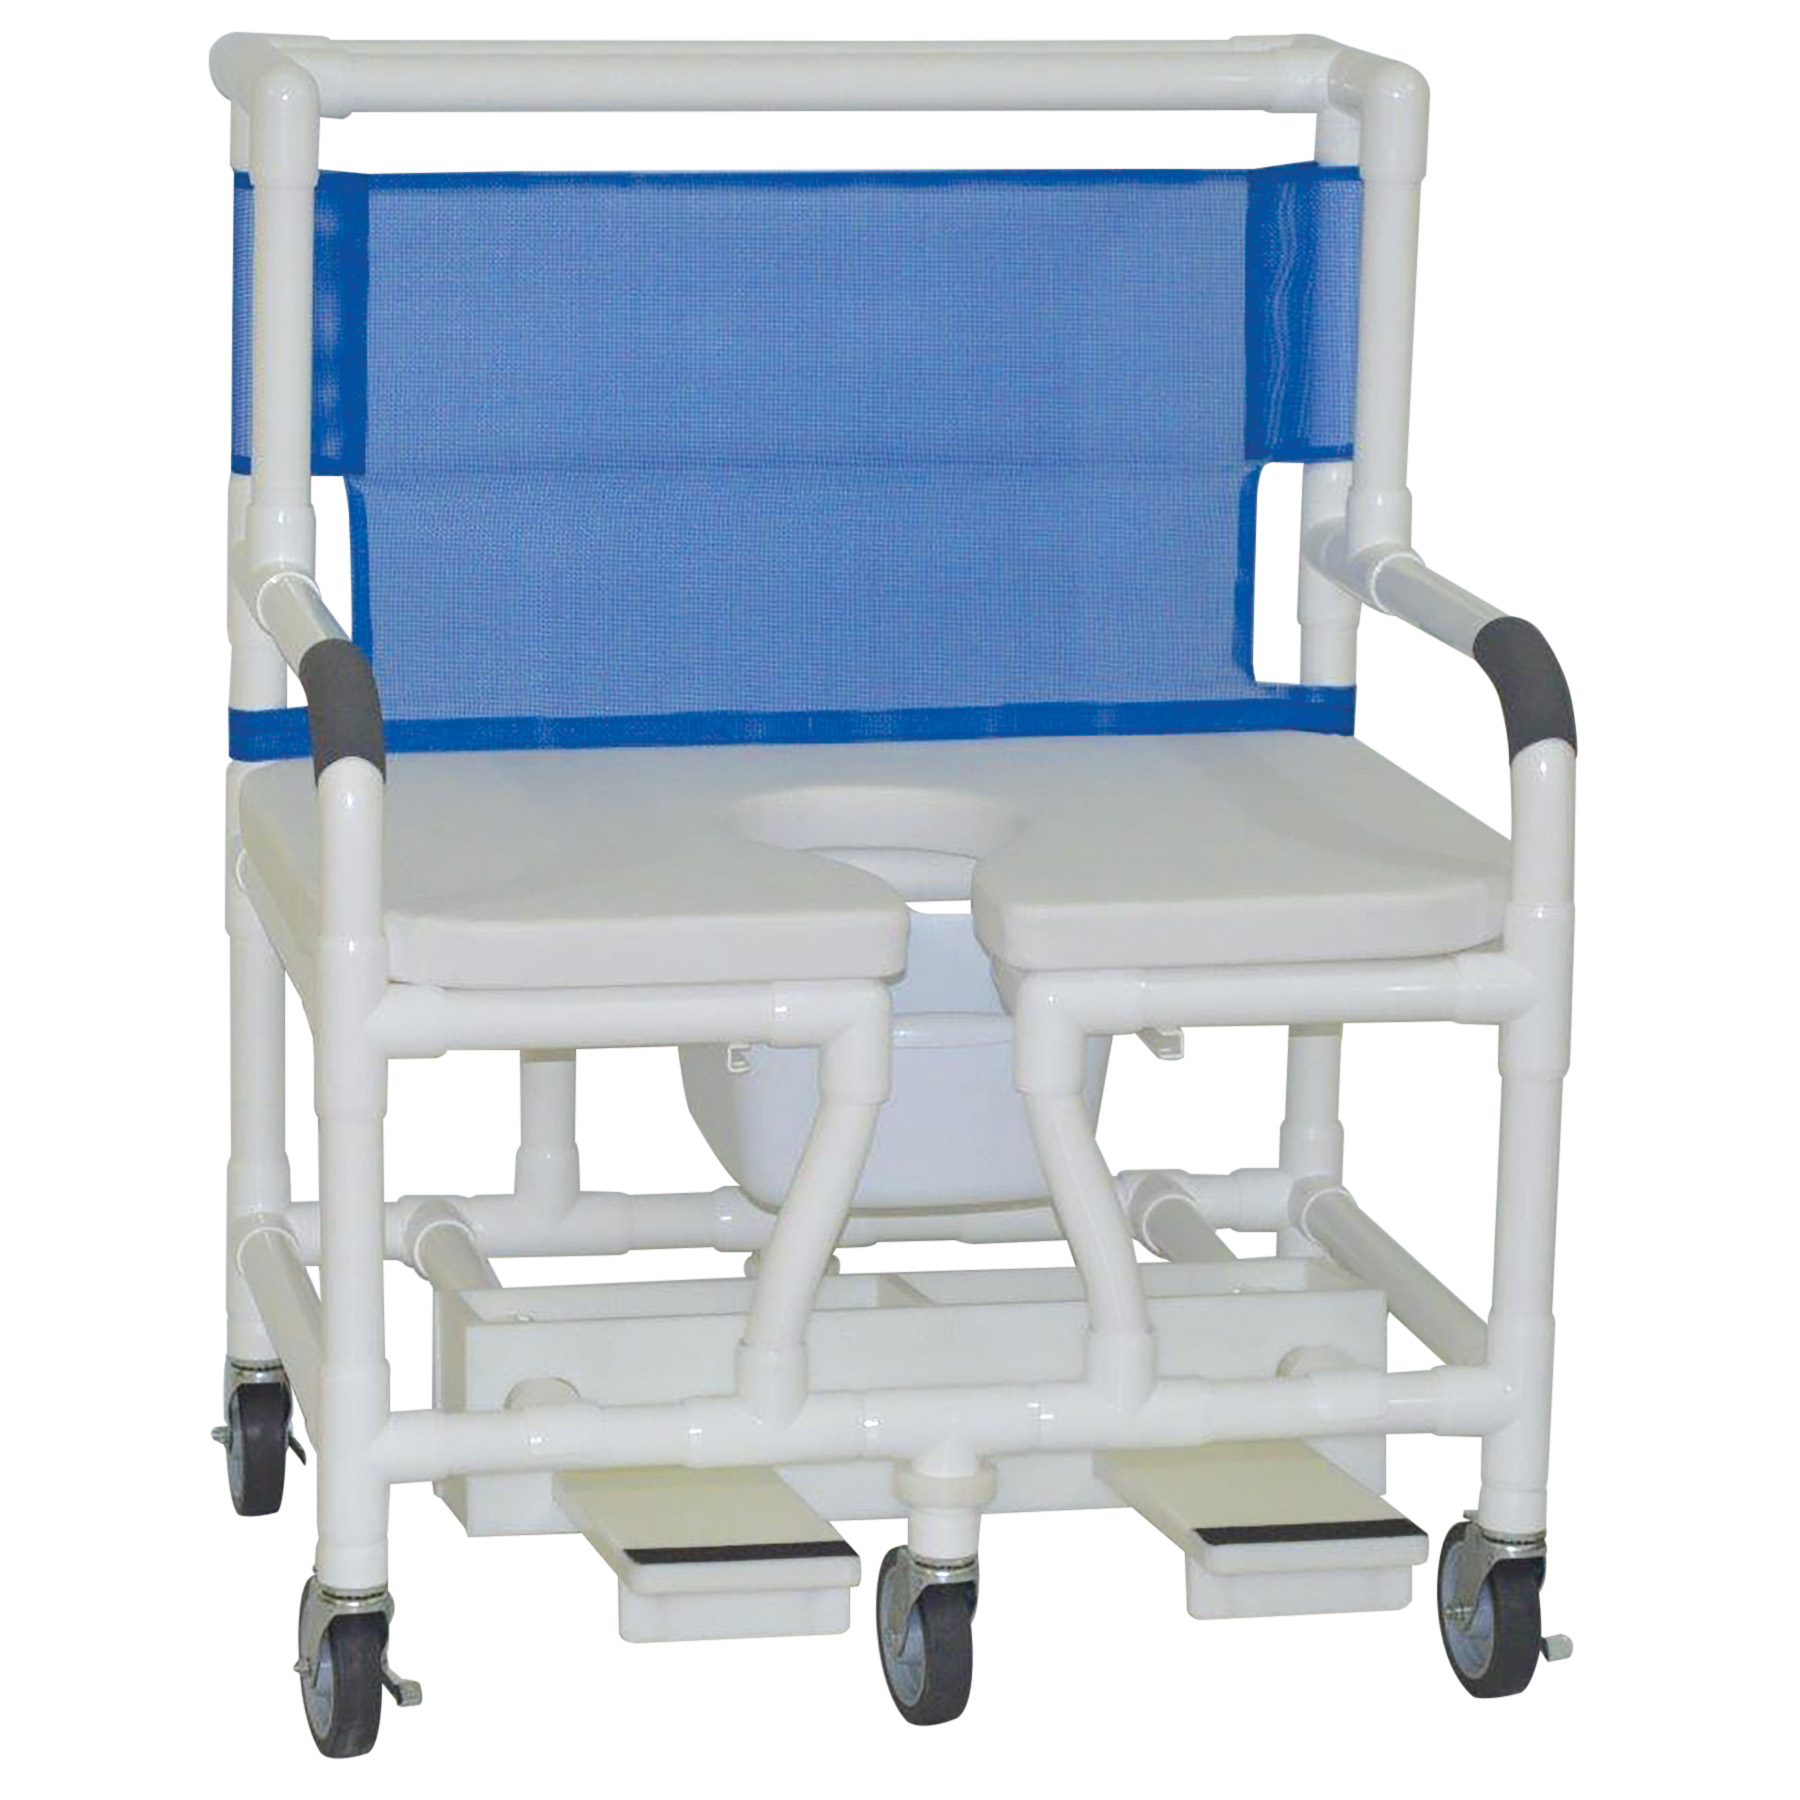 Model 131 5 Ssde Bariatric Shower Chair With Soft Seat Deluxe Elongated